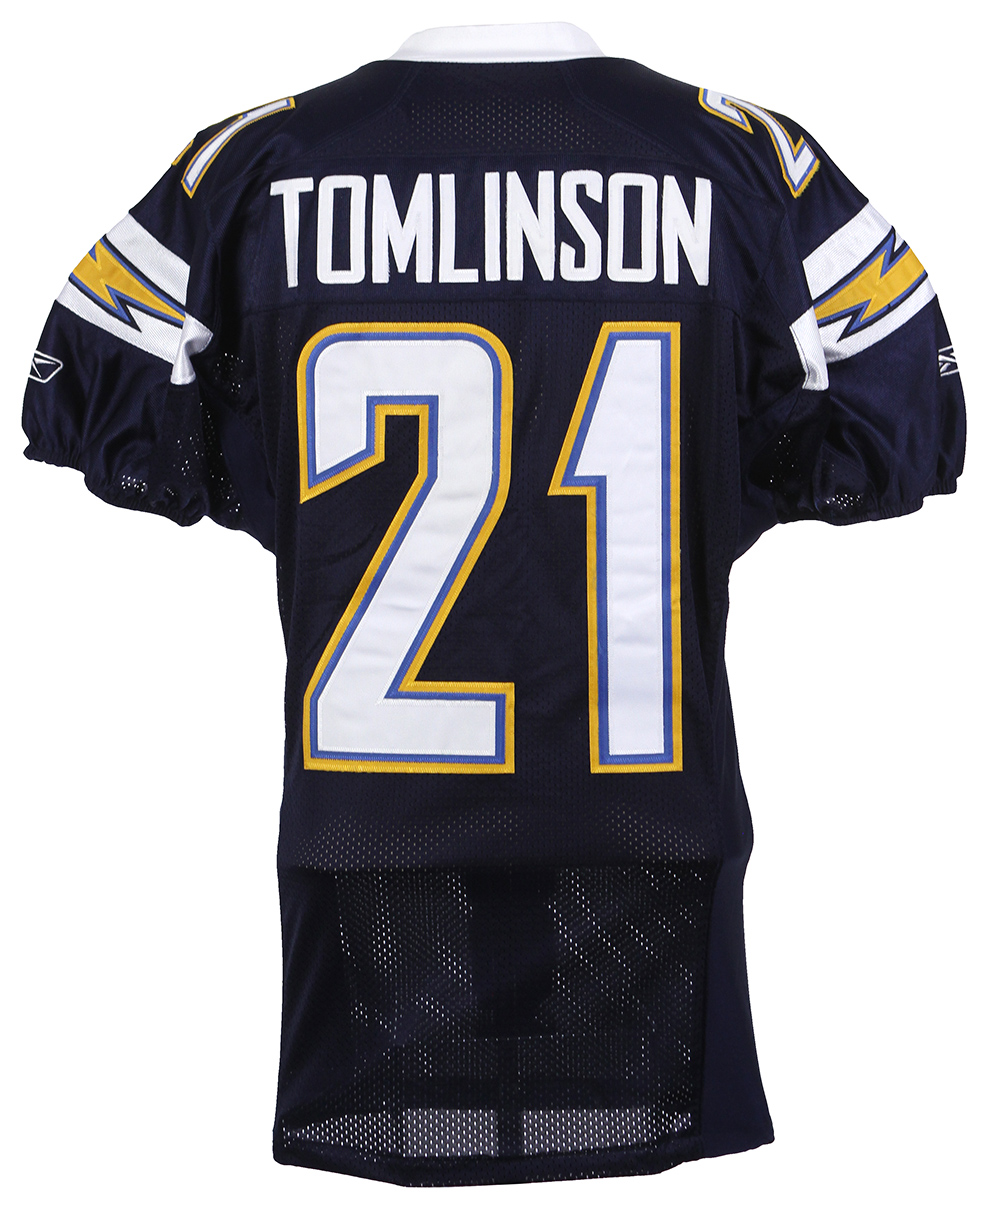 San Diego Chargers Home Games: 2007 LaDainian Tomlinson San Diego Chargers